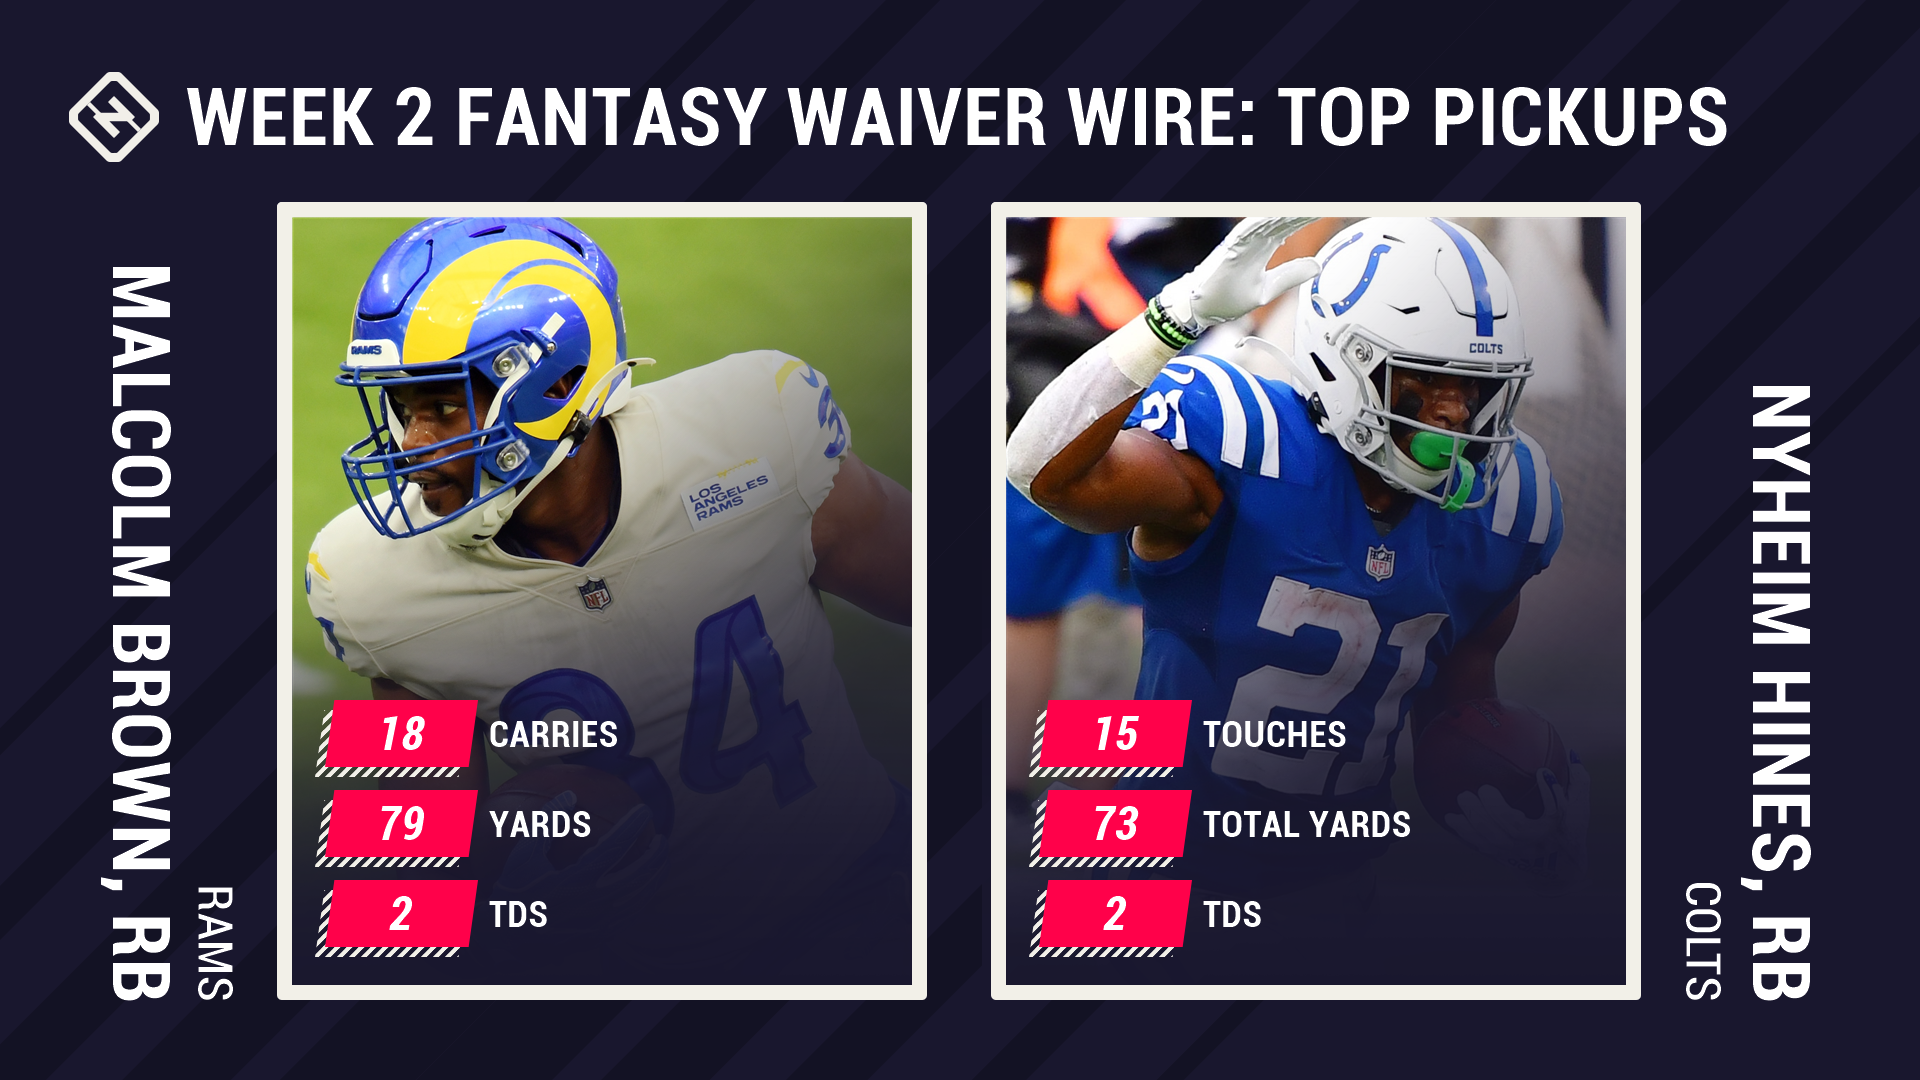 https://images.daznservices.com/di/library/sporting_news/ff/36/week-2-waiver-wire-top-pickups-ftr_12jwviuh9rum1op9tnnsa0fid.png?t=-1939639580&w=%7Bwidth%7D&quality=80